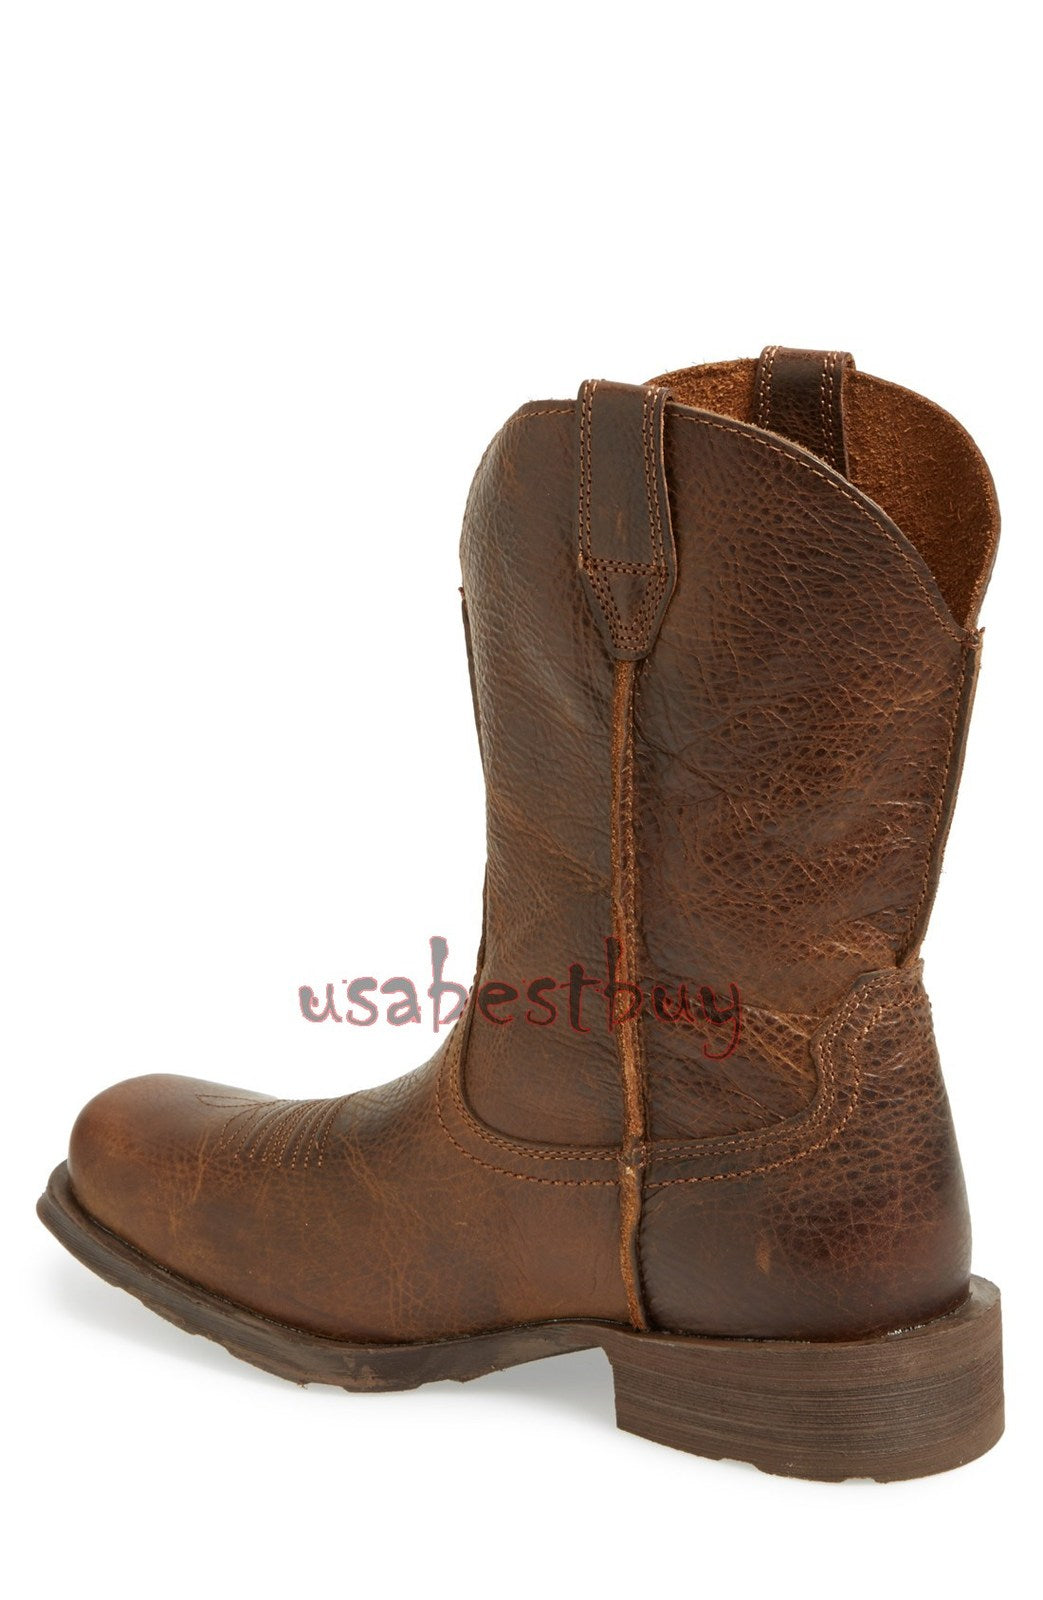 New Handmade Real Leather Ankle High Boots, Men Latest leather boots, High Boots